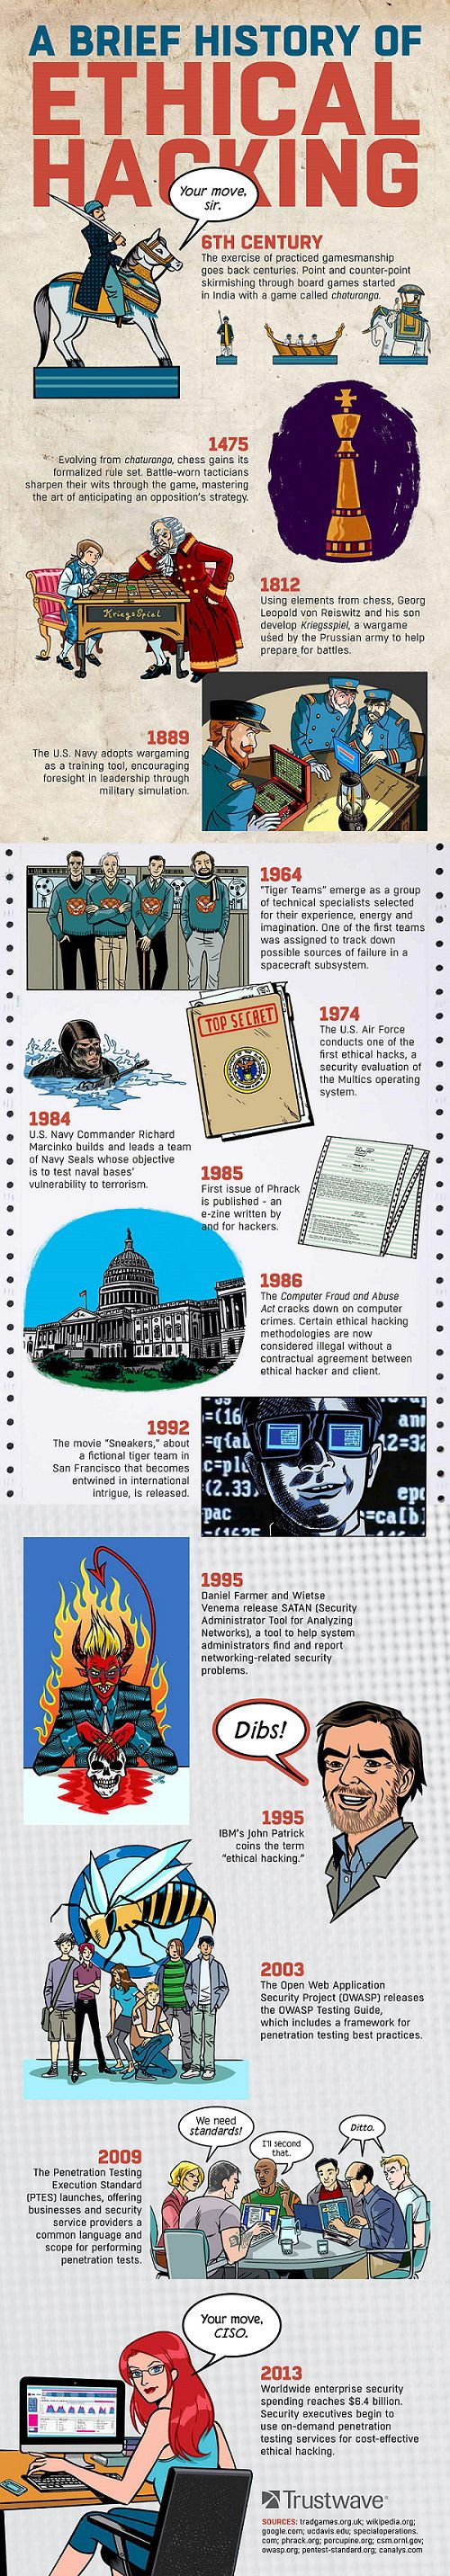 A brief history of ethical hacking #infografia #infographic #internet